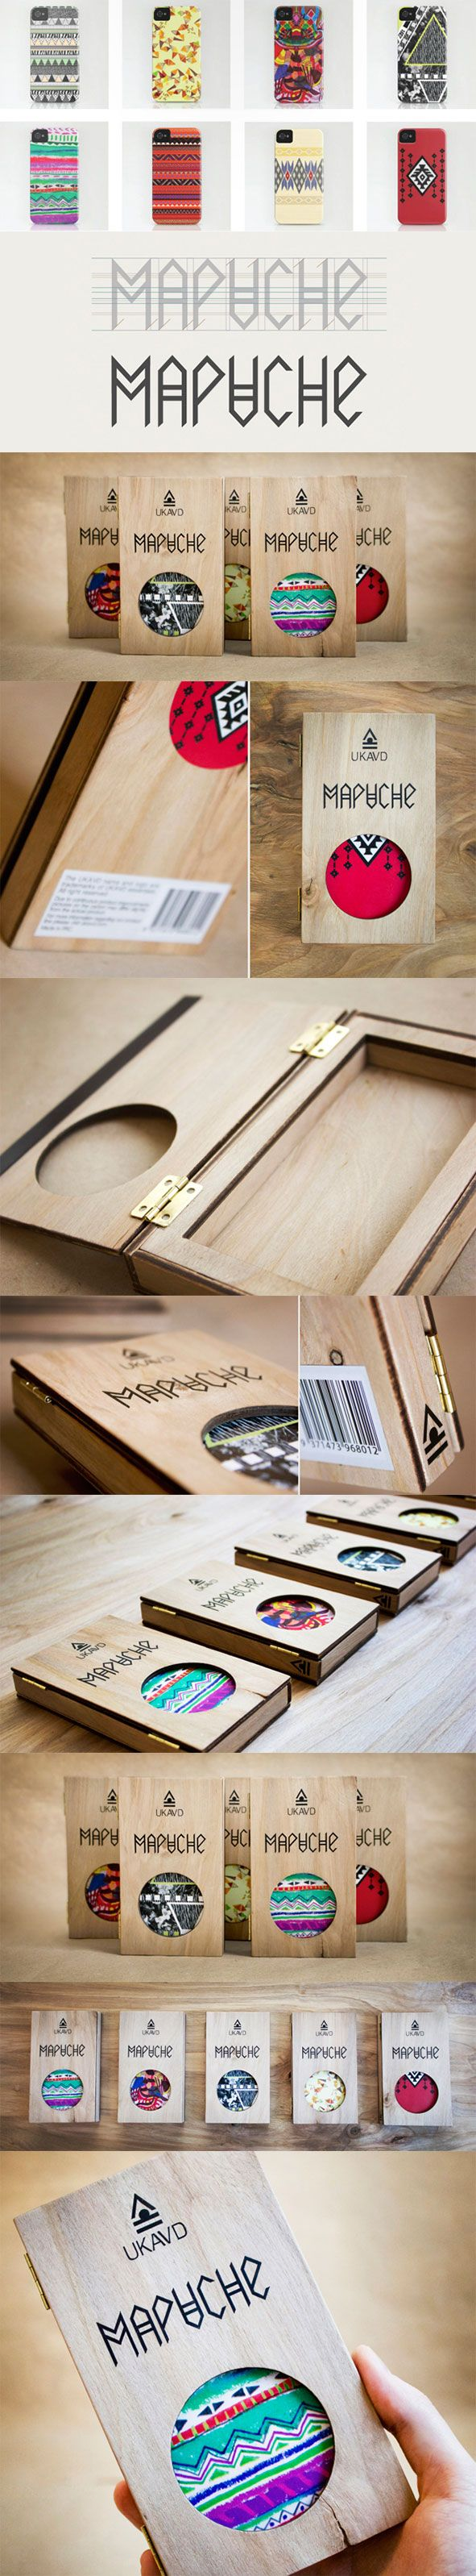 iPhone 5 cases package. Mapuche by Alina Kazachuk via Behance.